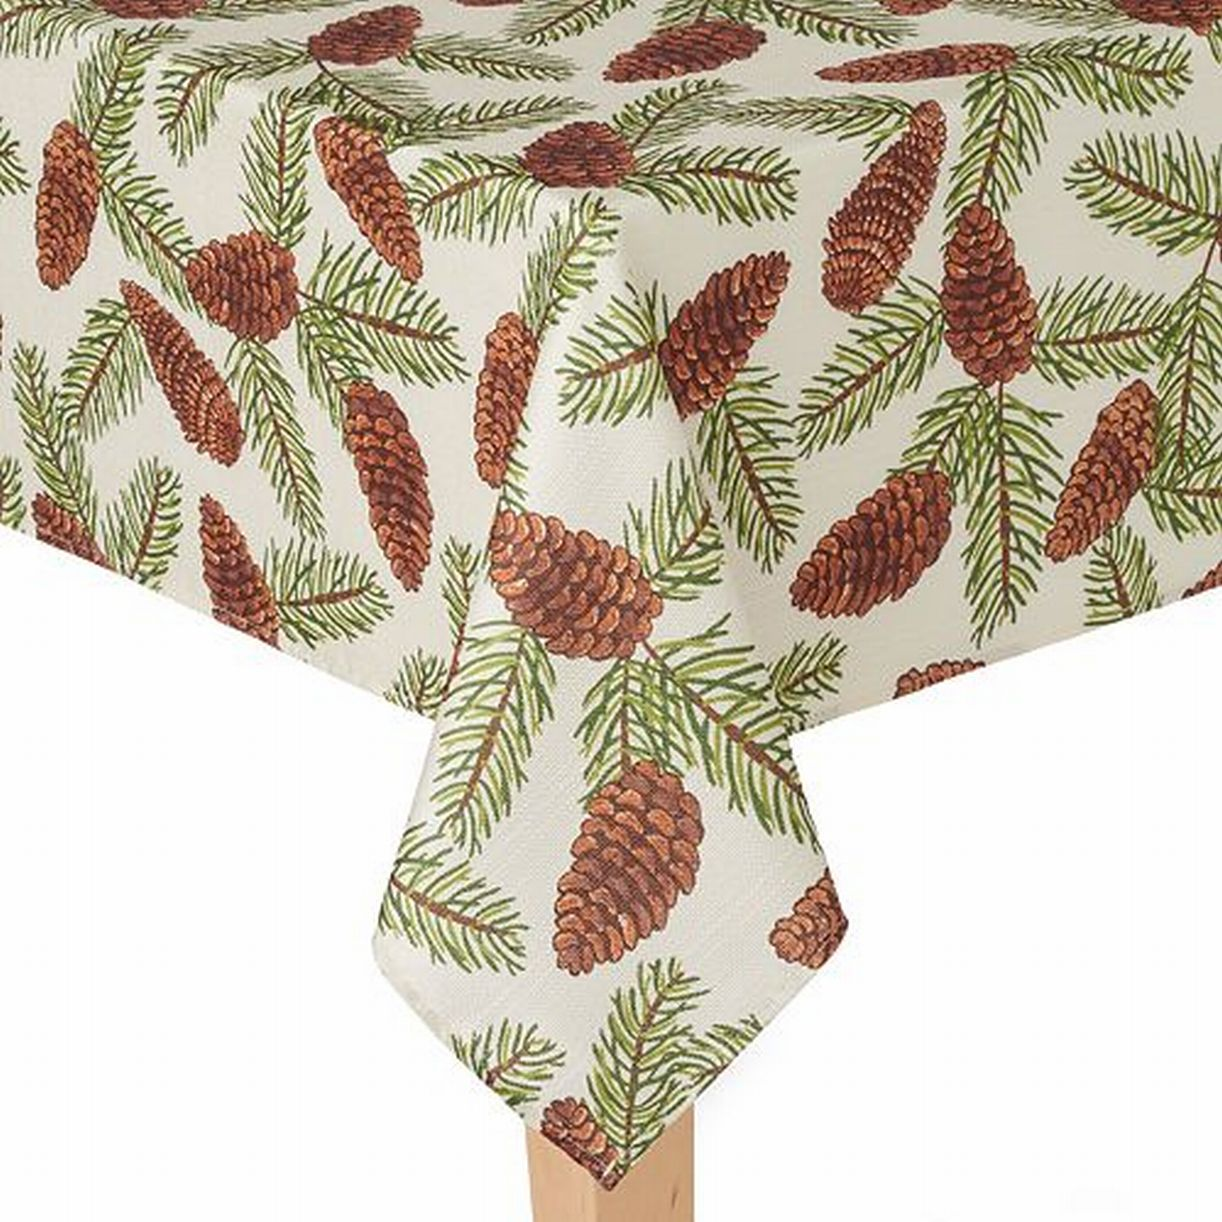 St Nicholas Square Woven Pine Cone Print Tablecloth Fabric Table Cloth 60x144 Ob